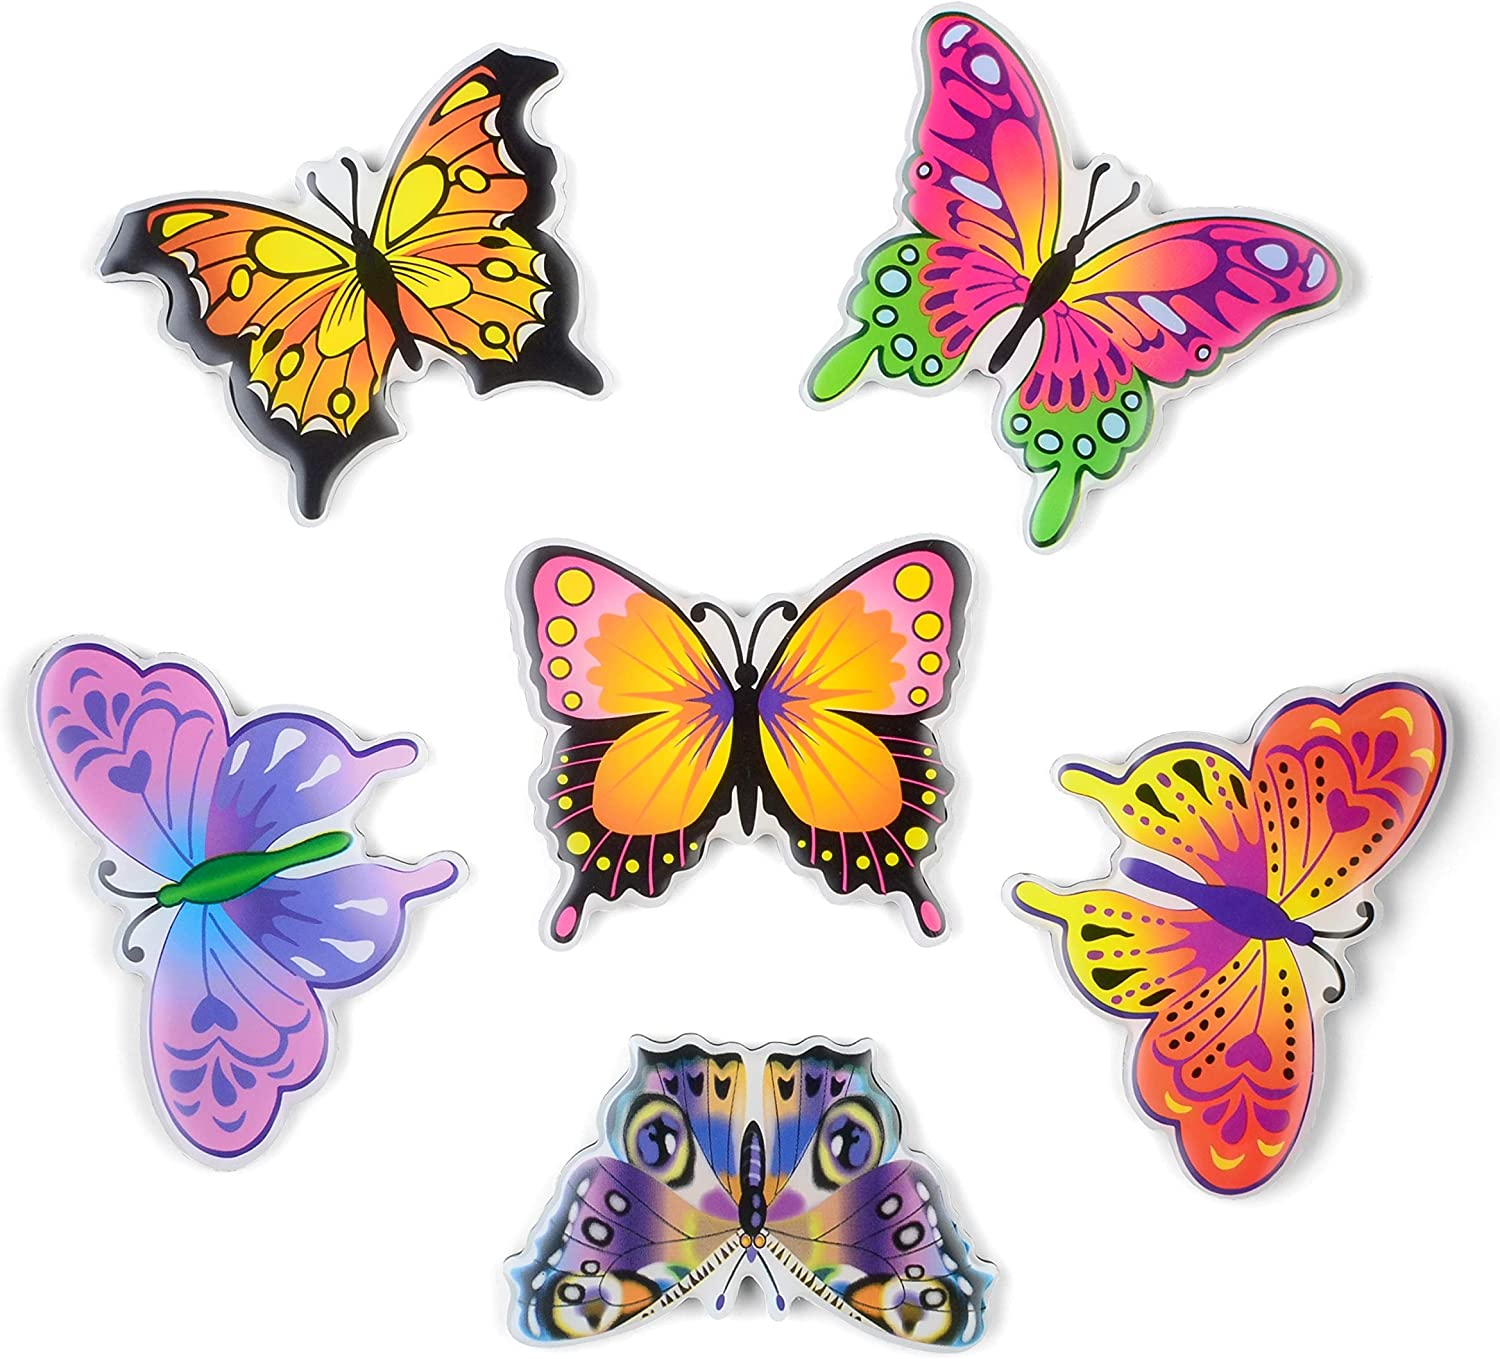 MORCART Fridge Magnets 6 Animals Photo Frame for kids,Strong Decorative Magnets for Dishwasher (butterfly)